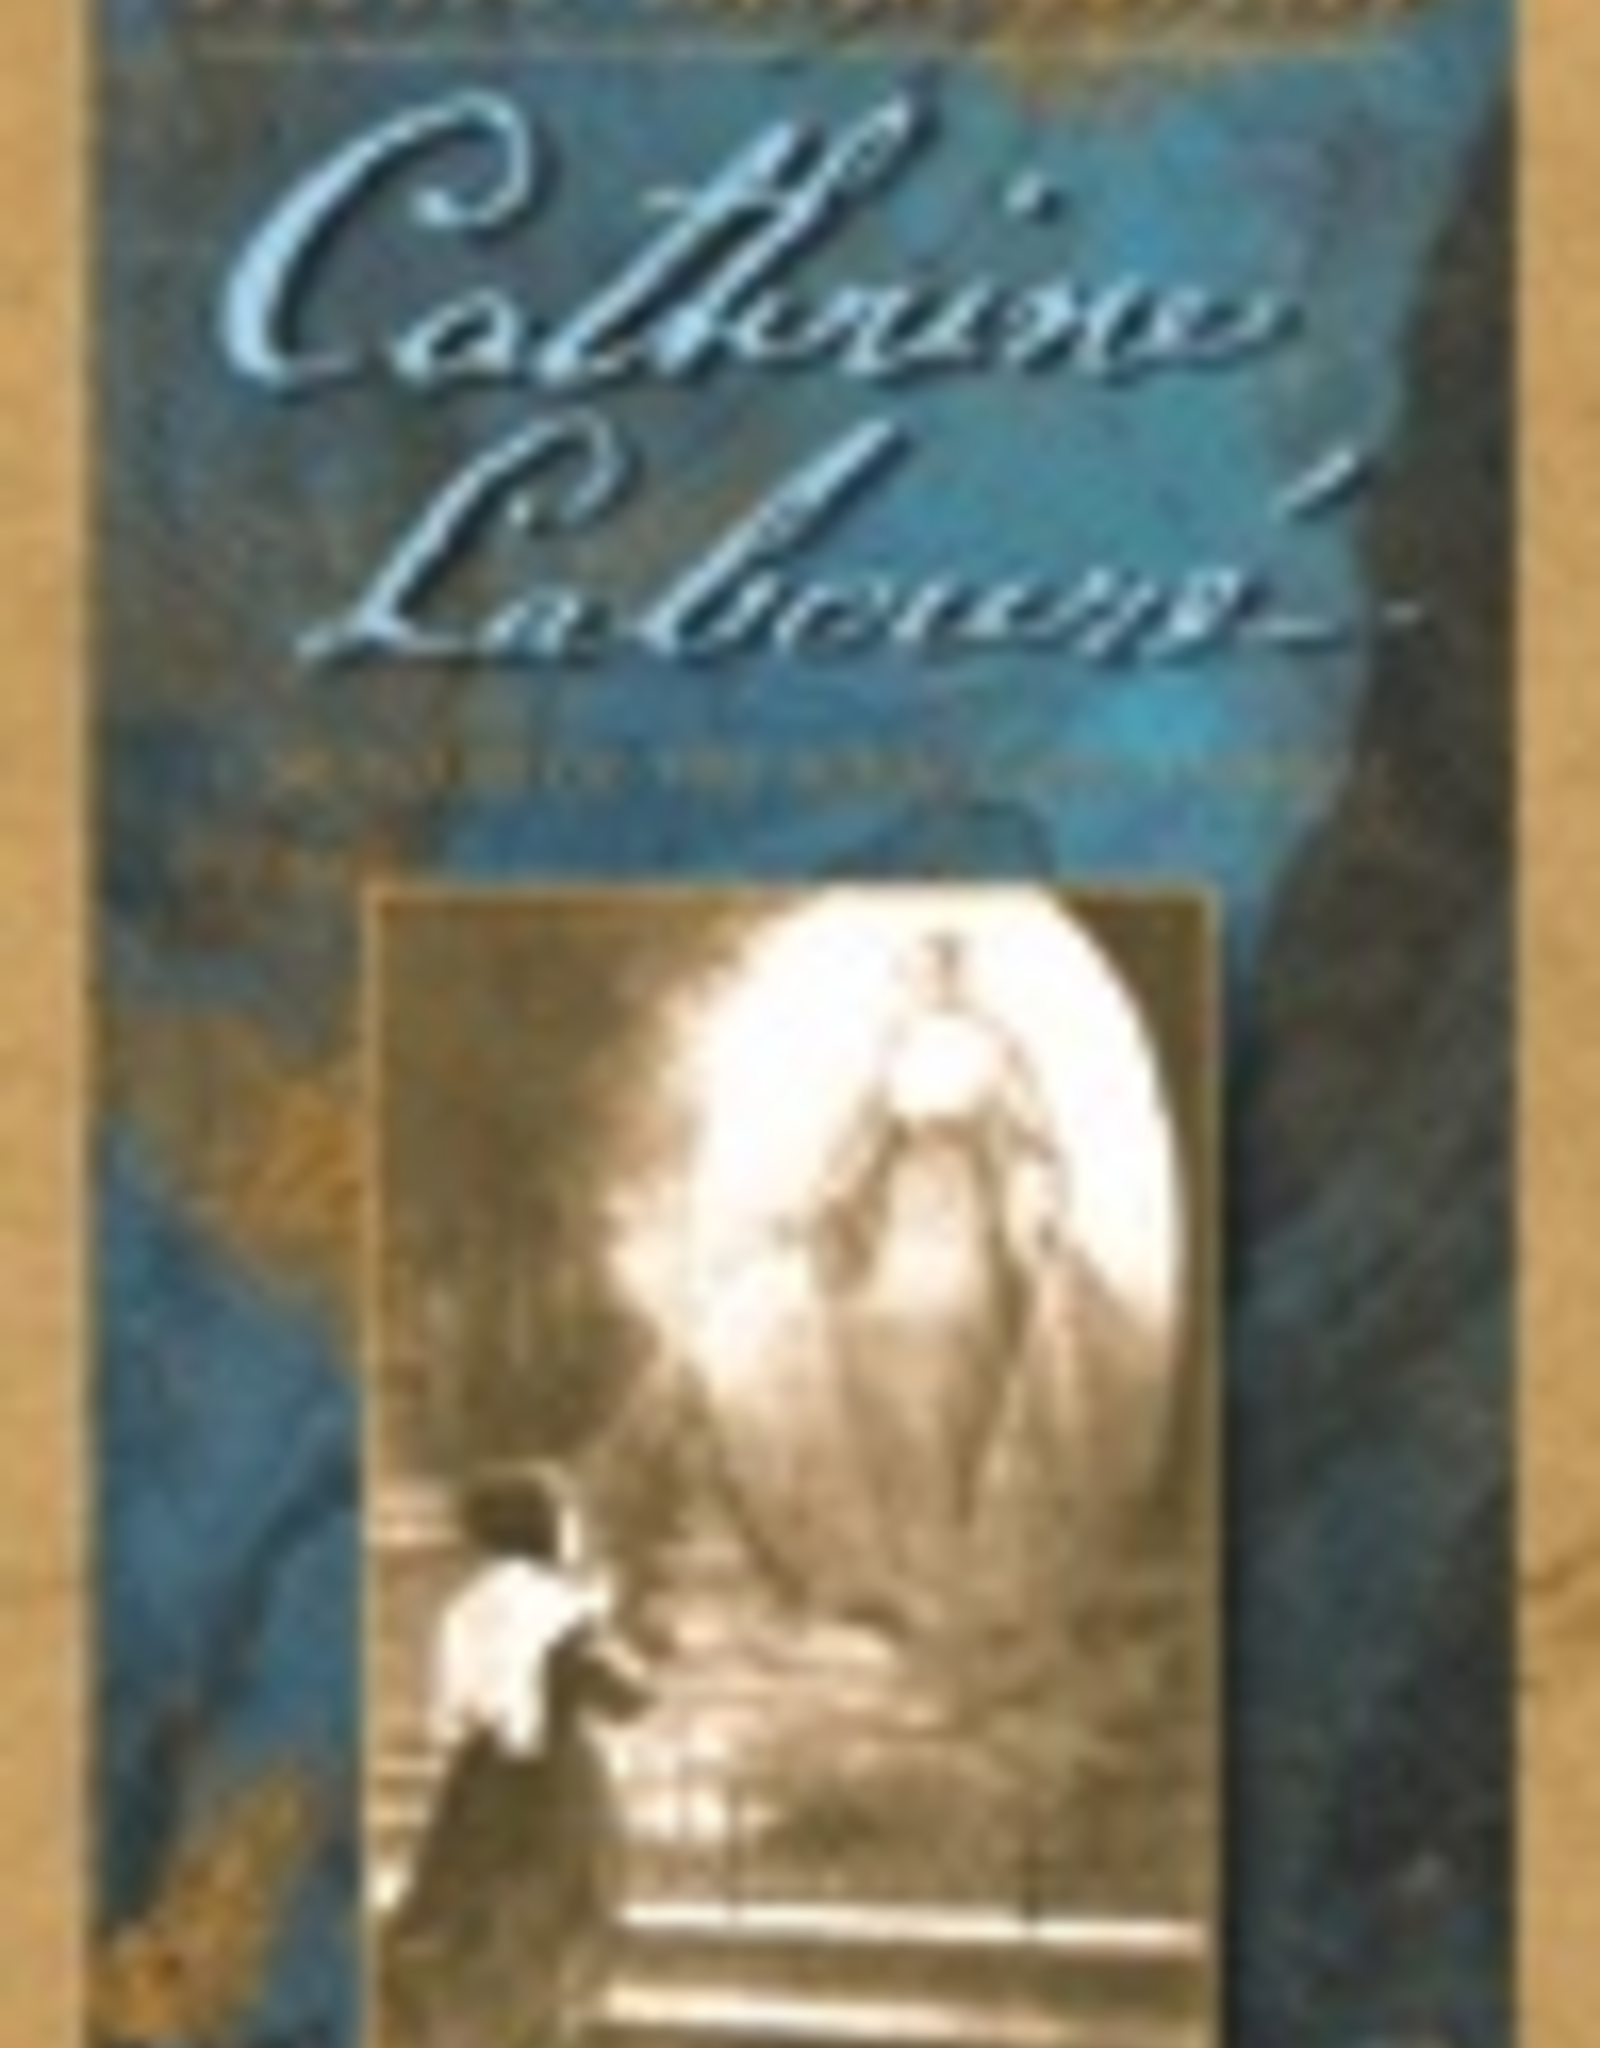 Pauline Catherine Laboure, by Rene Laurentin (paperback)